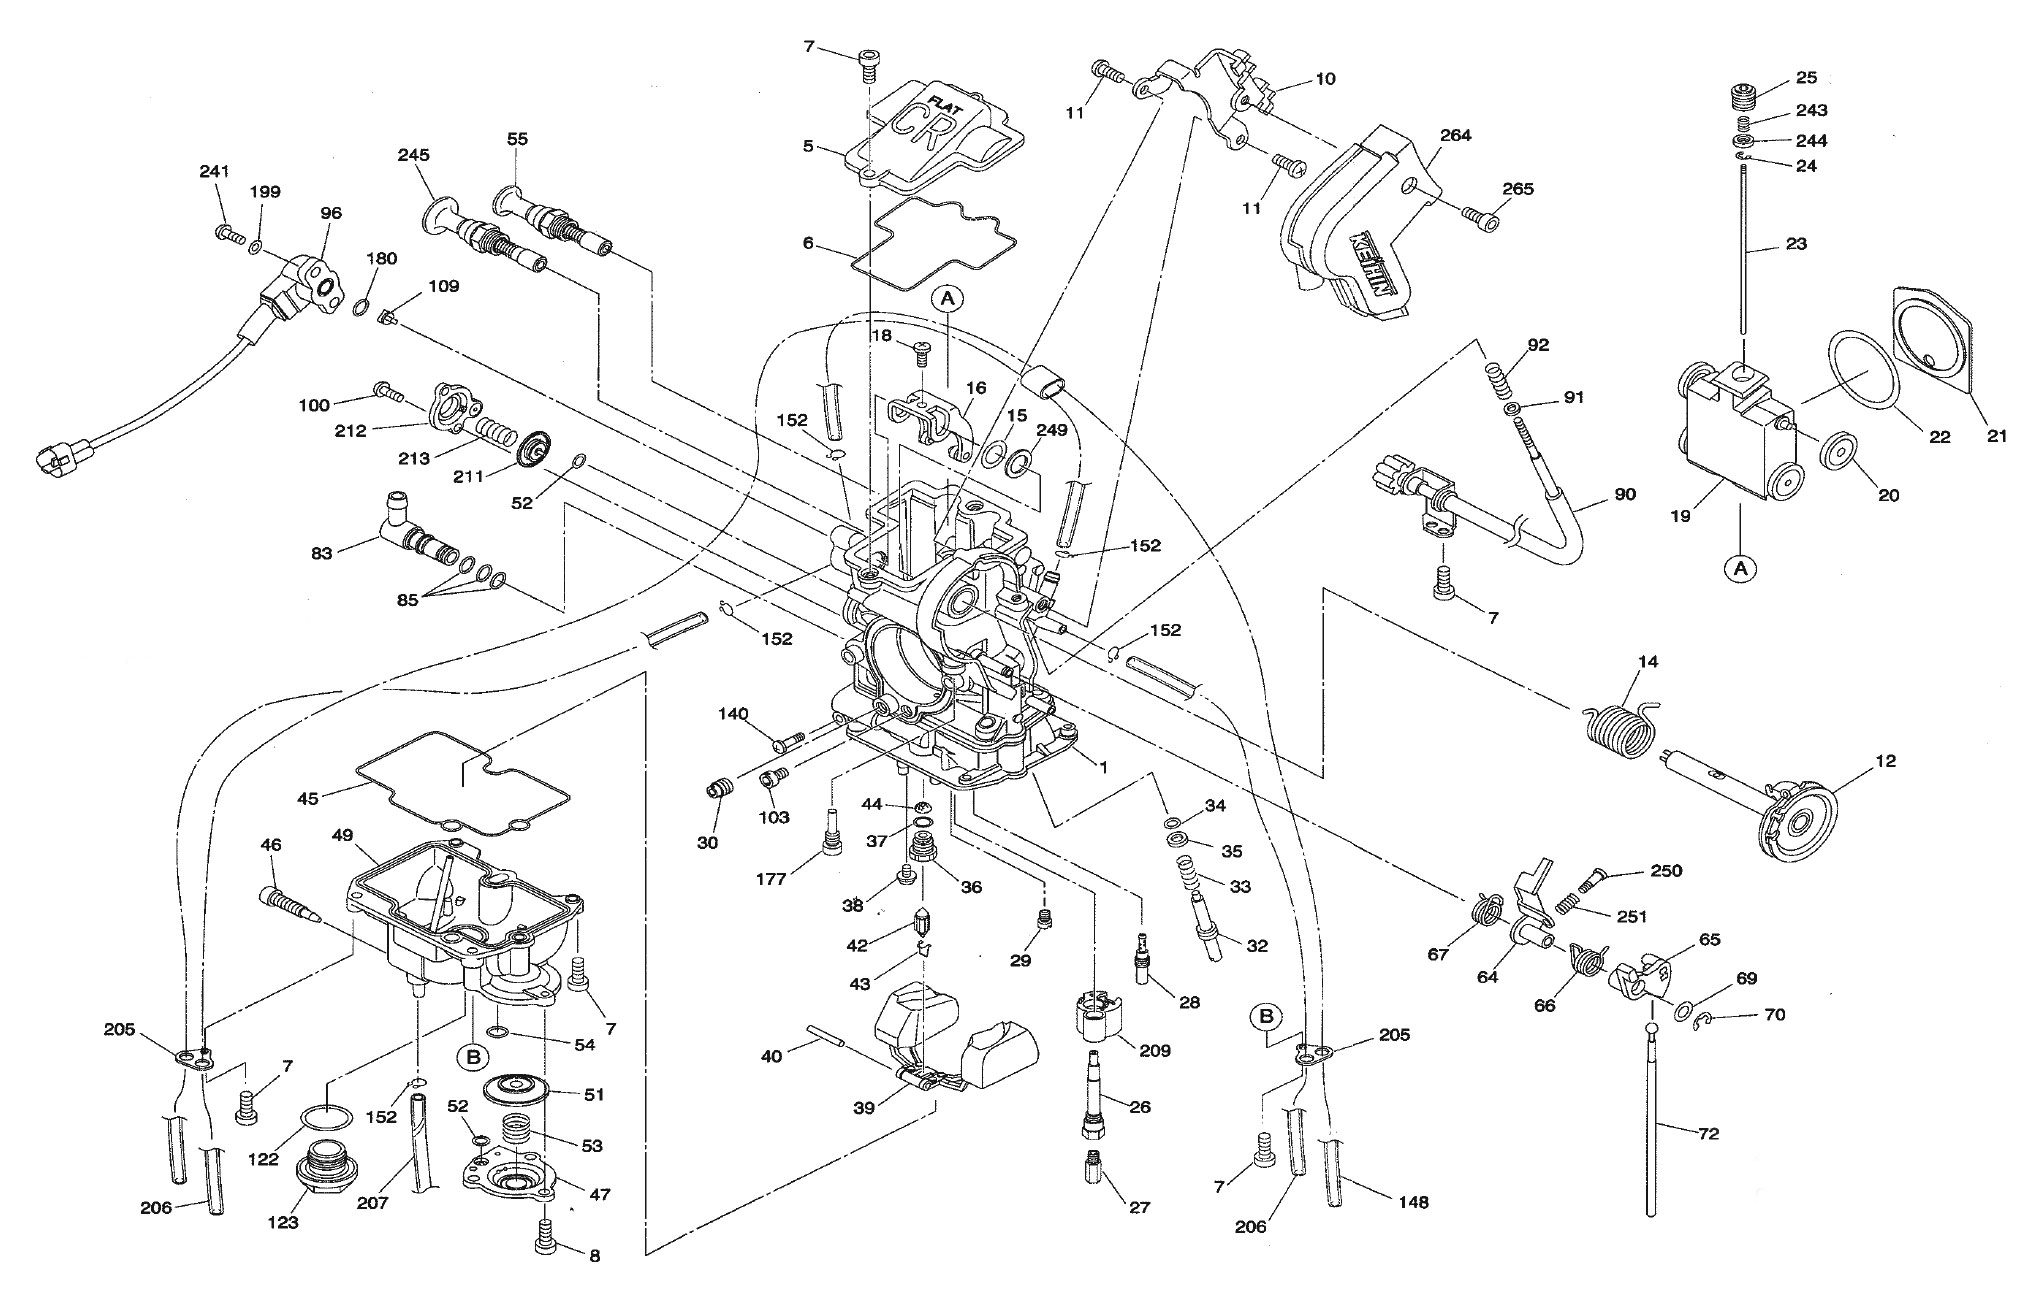 Exploded View  Parts Diagram  Keihin Fcr Mx 32  37  39  40  41 Carburetor